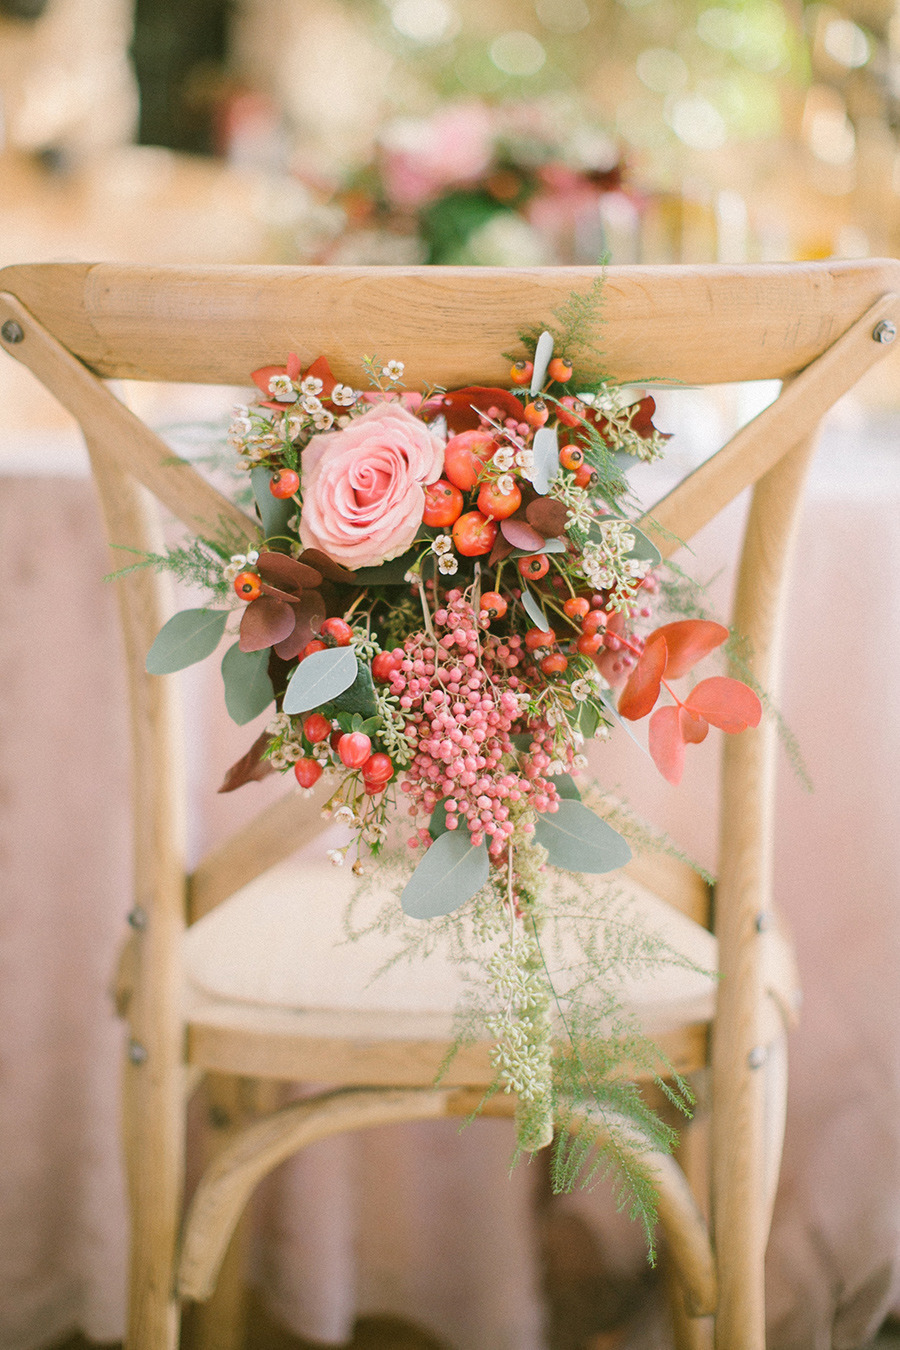 wedding chair decor - Boho Chic Wedding Inspiration Shoot from Anna Roussos Photography - annaroussos.com | Read more : https://www.fabmood.com/boho-chic-wedding-inspiration-shoot-anna-roussos-photography